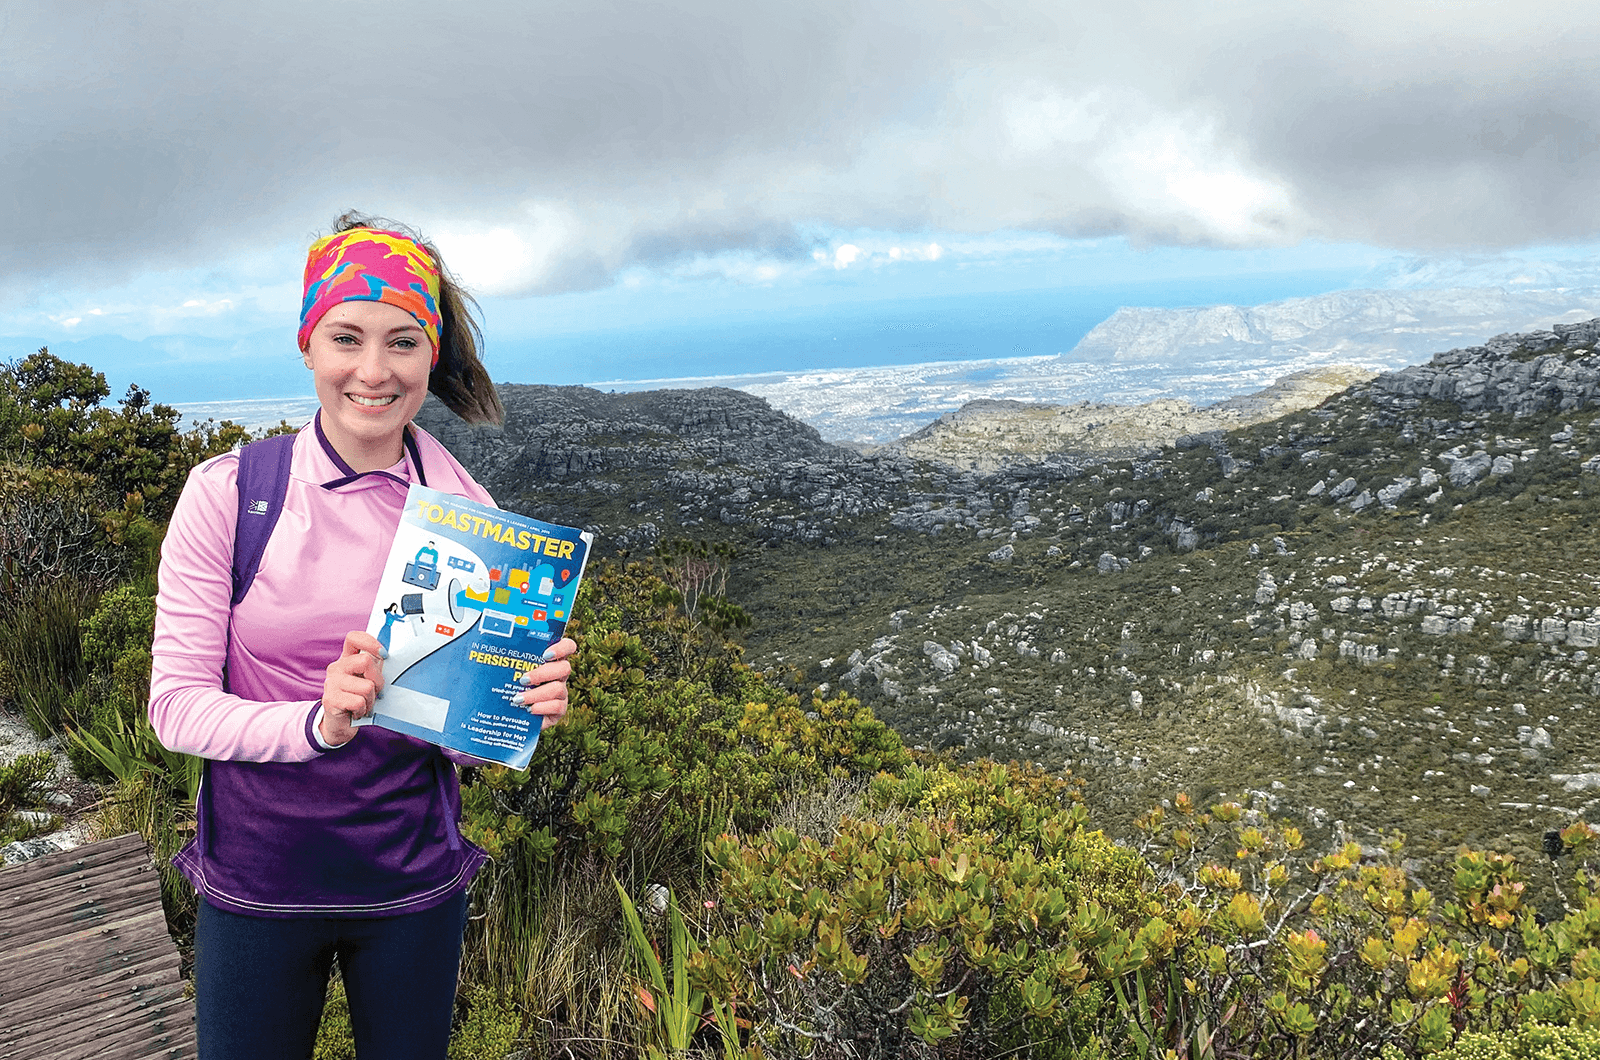 Narissa Duvenhage of Johannesburg, South Africa, hikes on Table Mountain in Cape Town, South Africa.